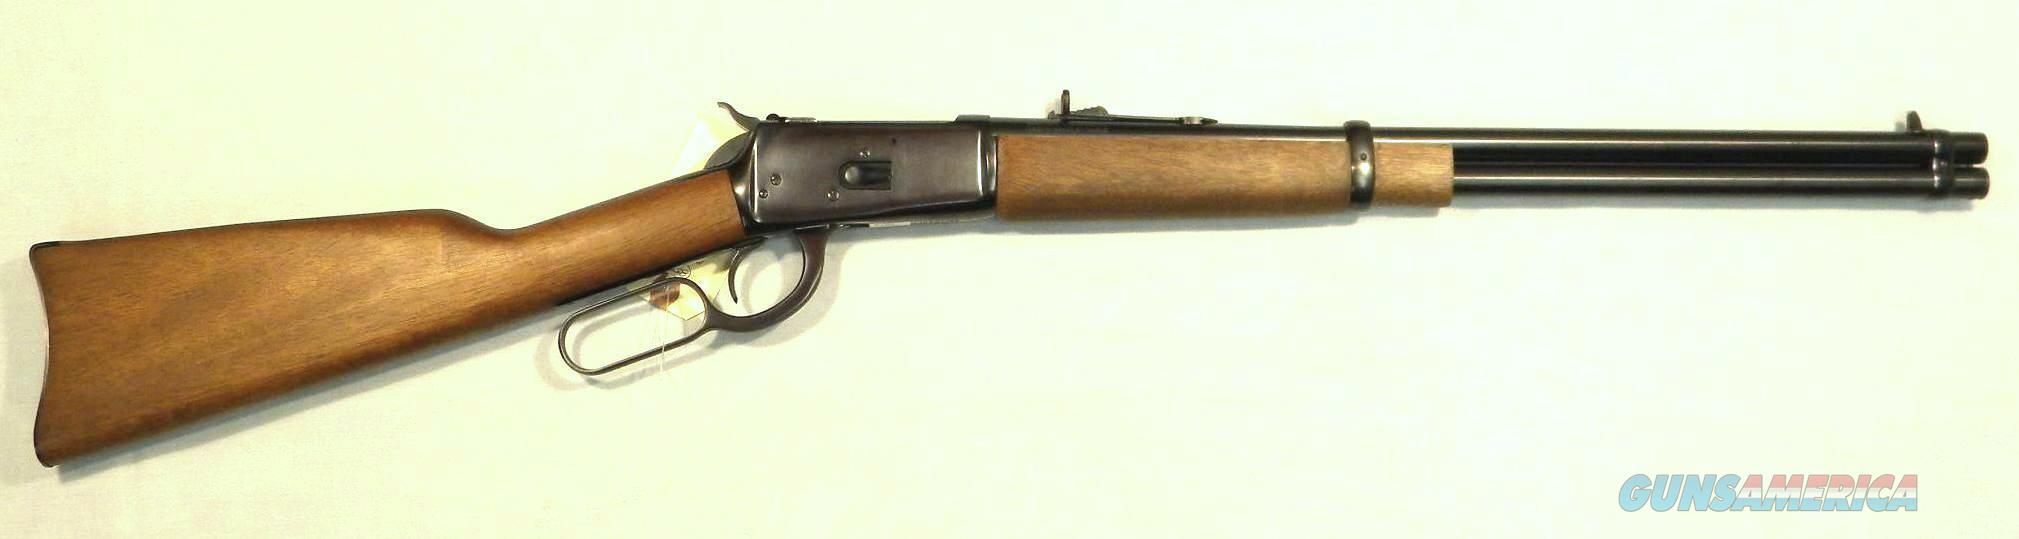 Rossi R92, .357 Mag Lever-Action Rifle, 20'' Blued, New In Box  Guns > Rifles > Rossi Rifles > Cowboy